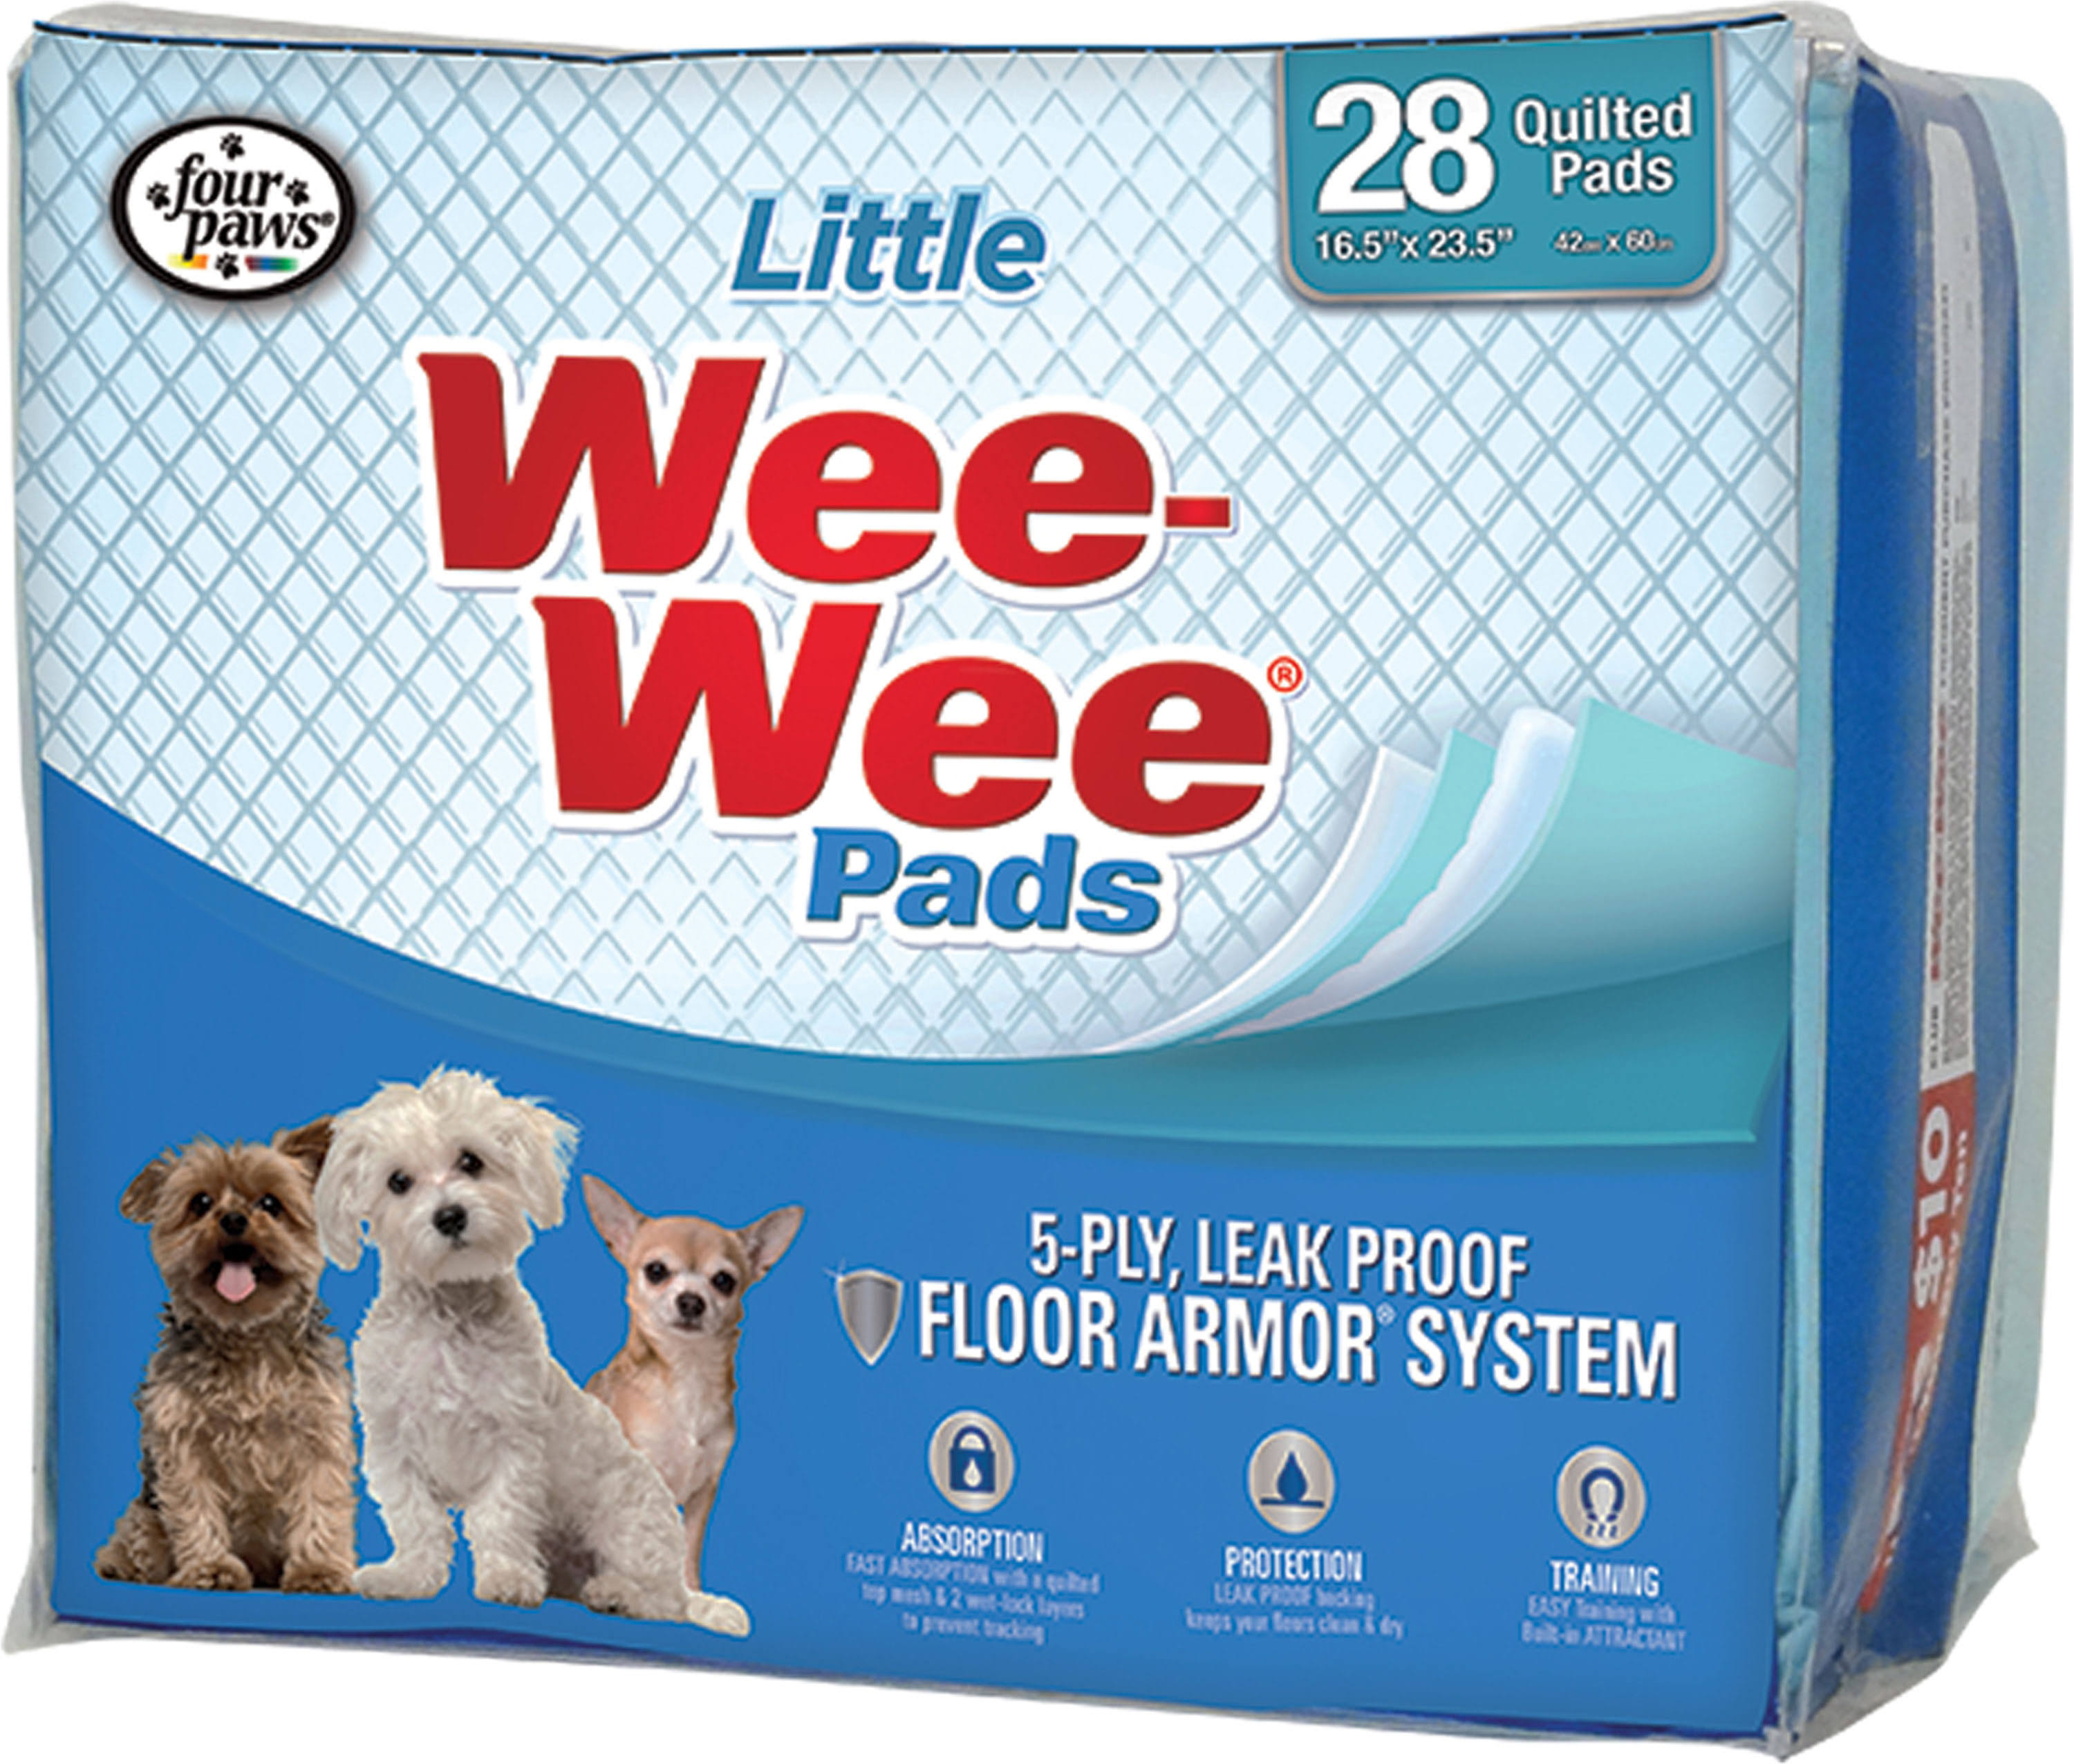 Four Paws Products Lil Dog Wee Wee Pads - 28 Quilted Pads